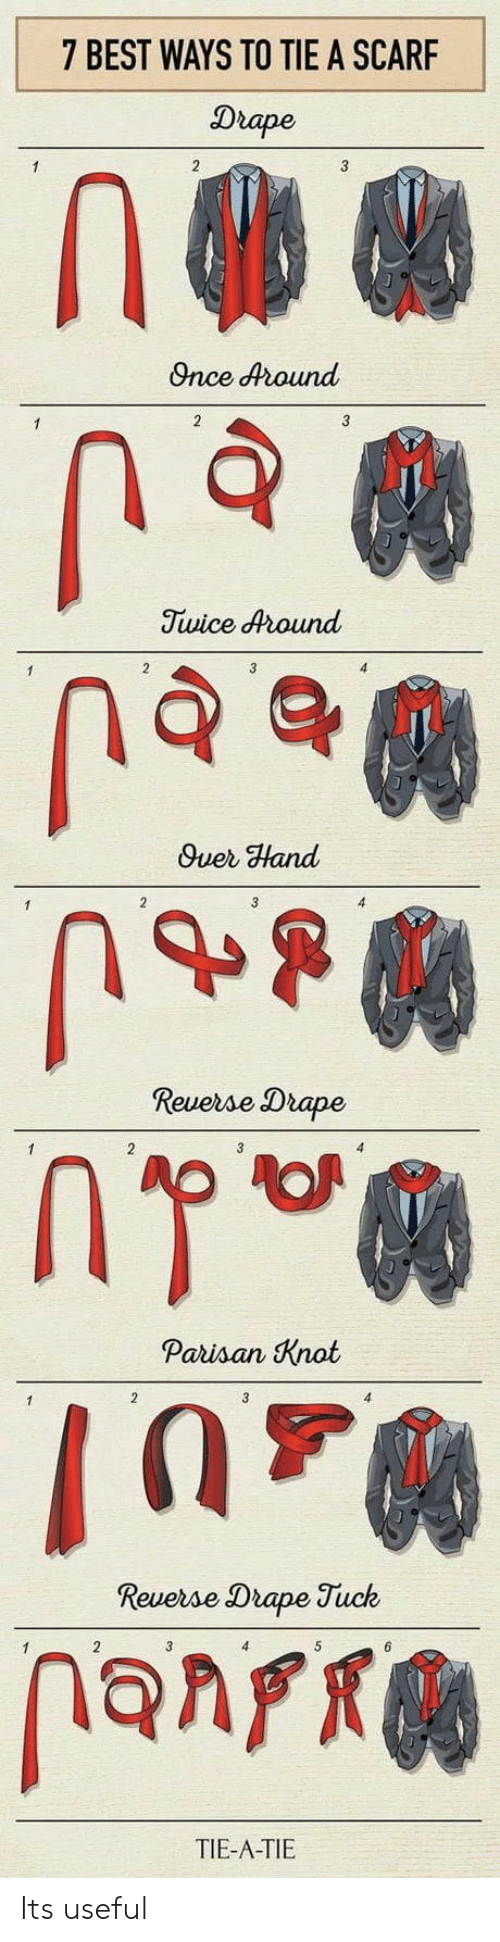 tuck: 7 BEST WAYS TO TIE A SCARF  Drape  Once dound  Twice dround  Quer Hand  Revese Drape  Paisan Knat  Drape Tuck  TIE-A-TIE Its useful